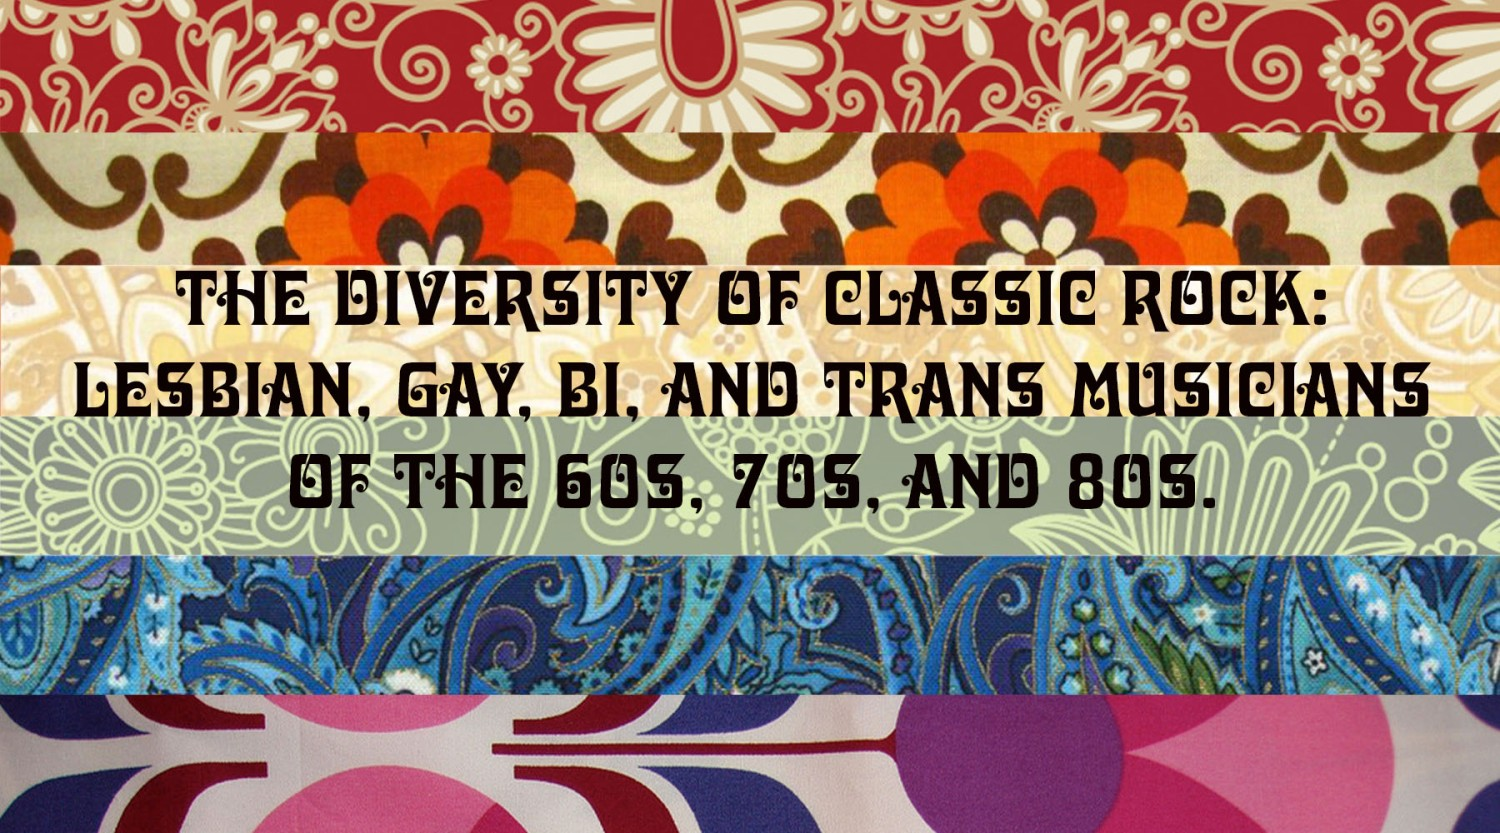 LGBT Musicians from the 1950s-1980s – The Diversity of